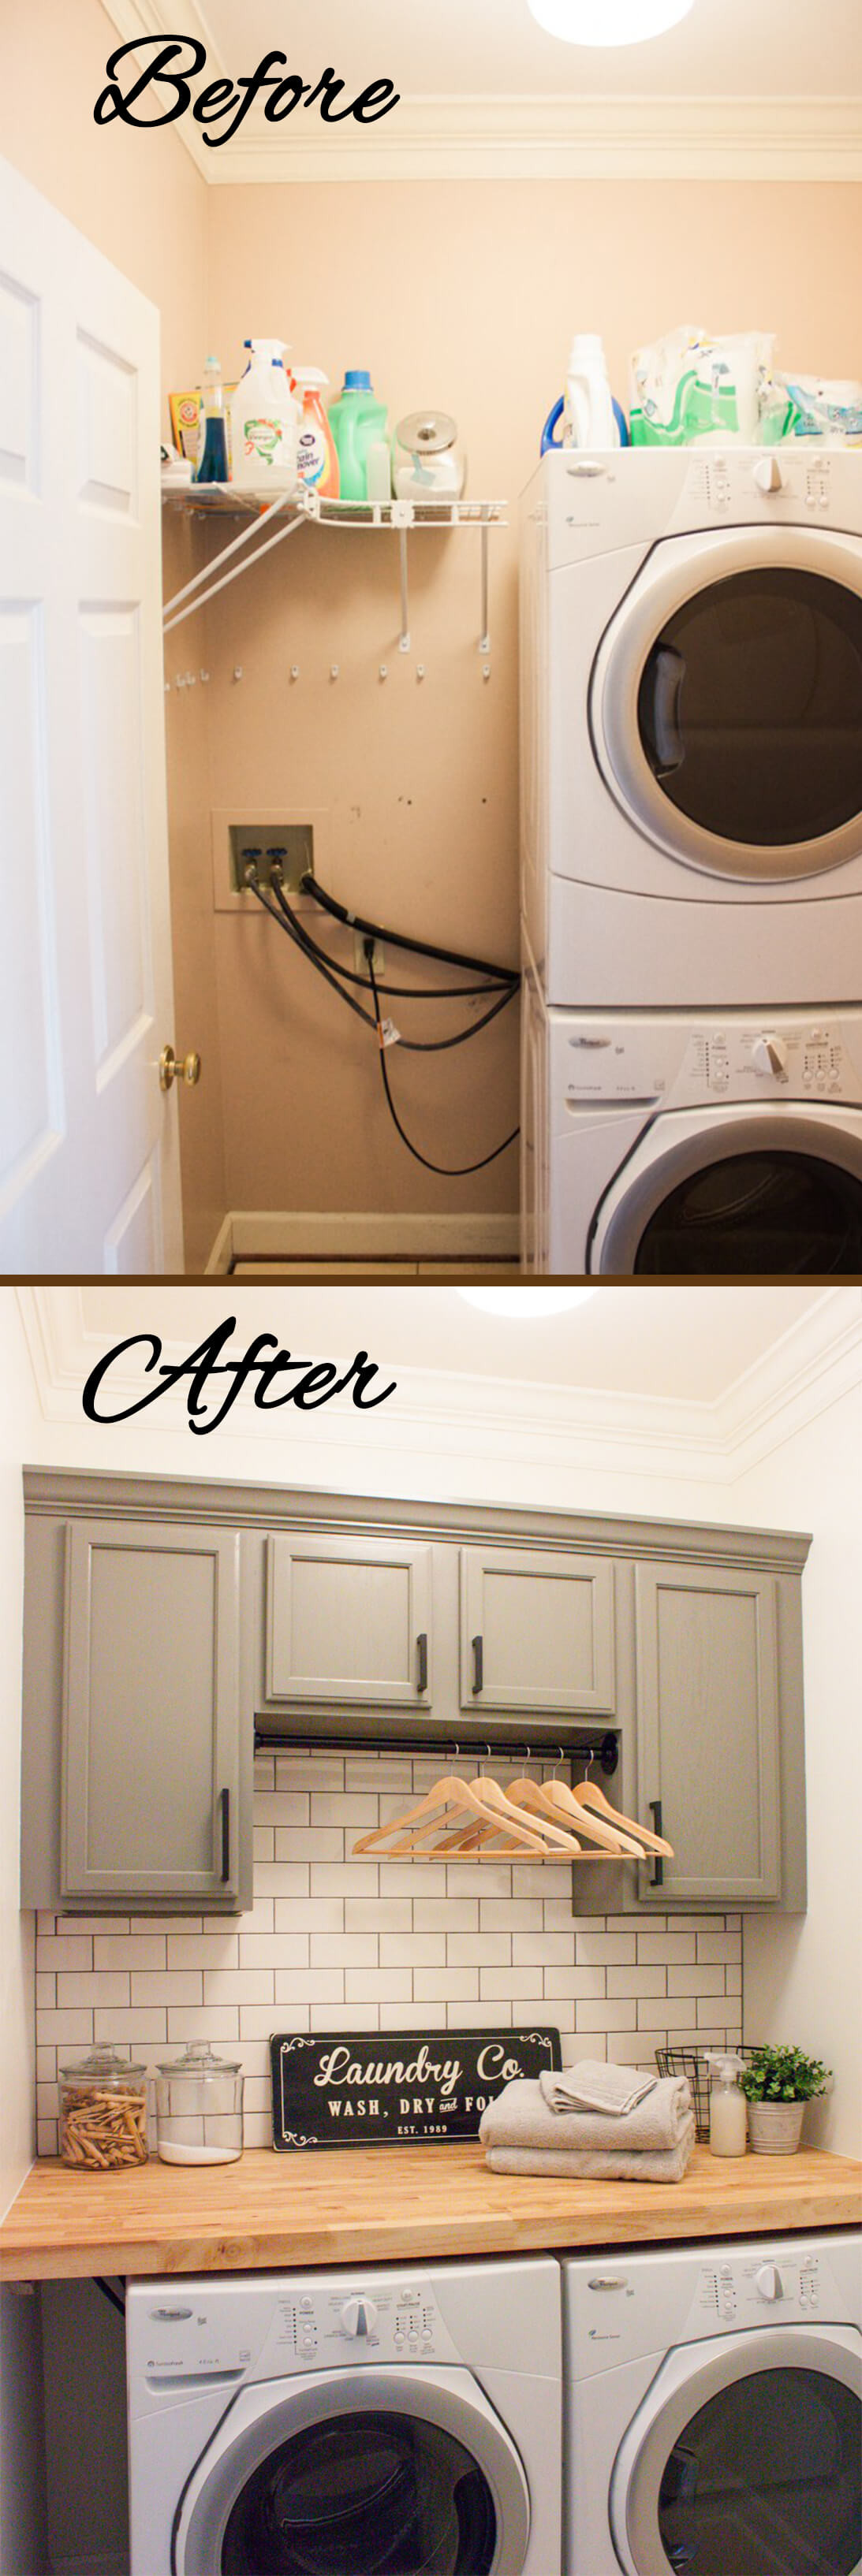 Best ideas about Laundry Room Makeover . Save or Pin 23 Best Bud Friendly Laundry Room Makeover Ideas and Now.